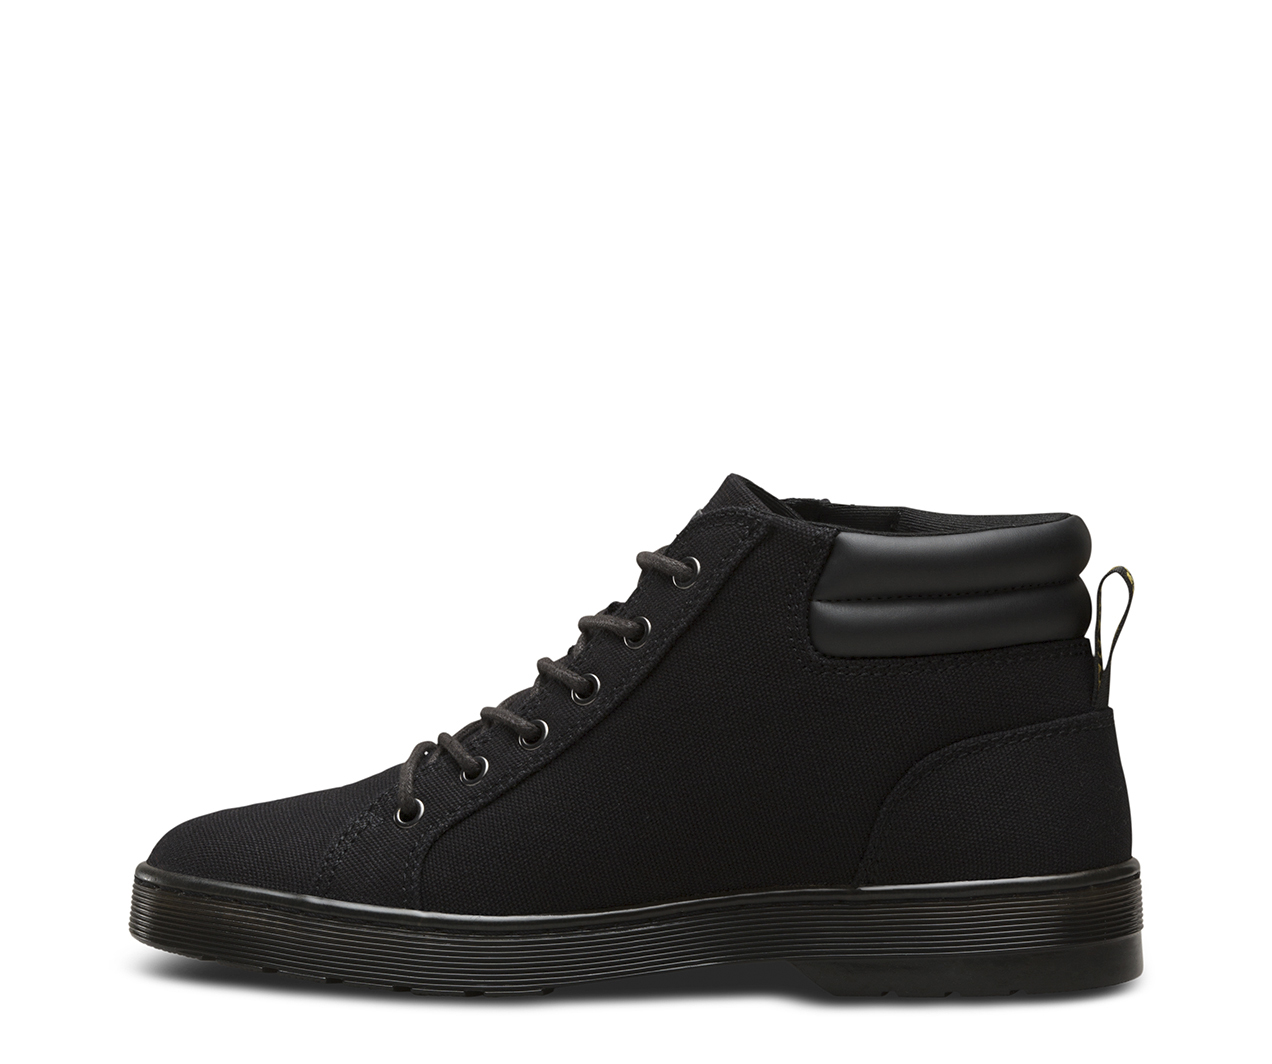 Pour Plaza The Offres Martens Homme Store Fr Official Dr zPP76